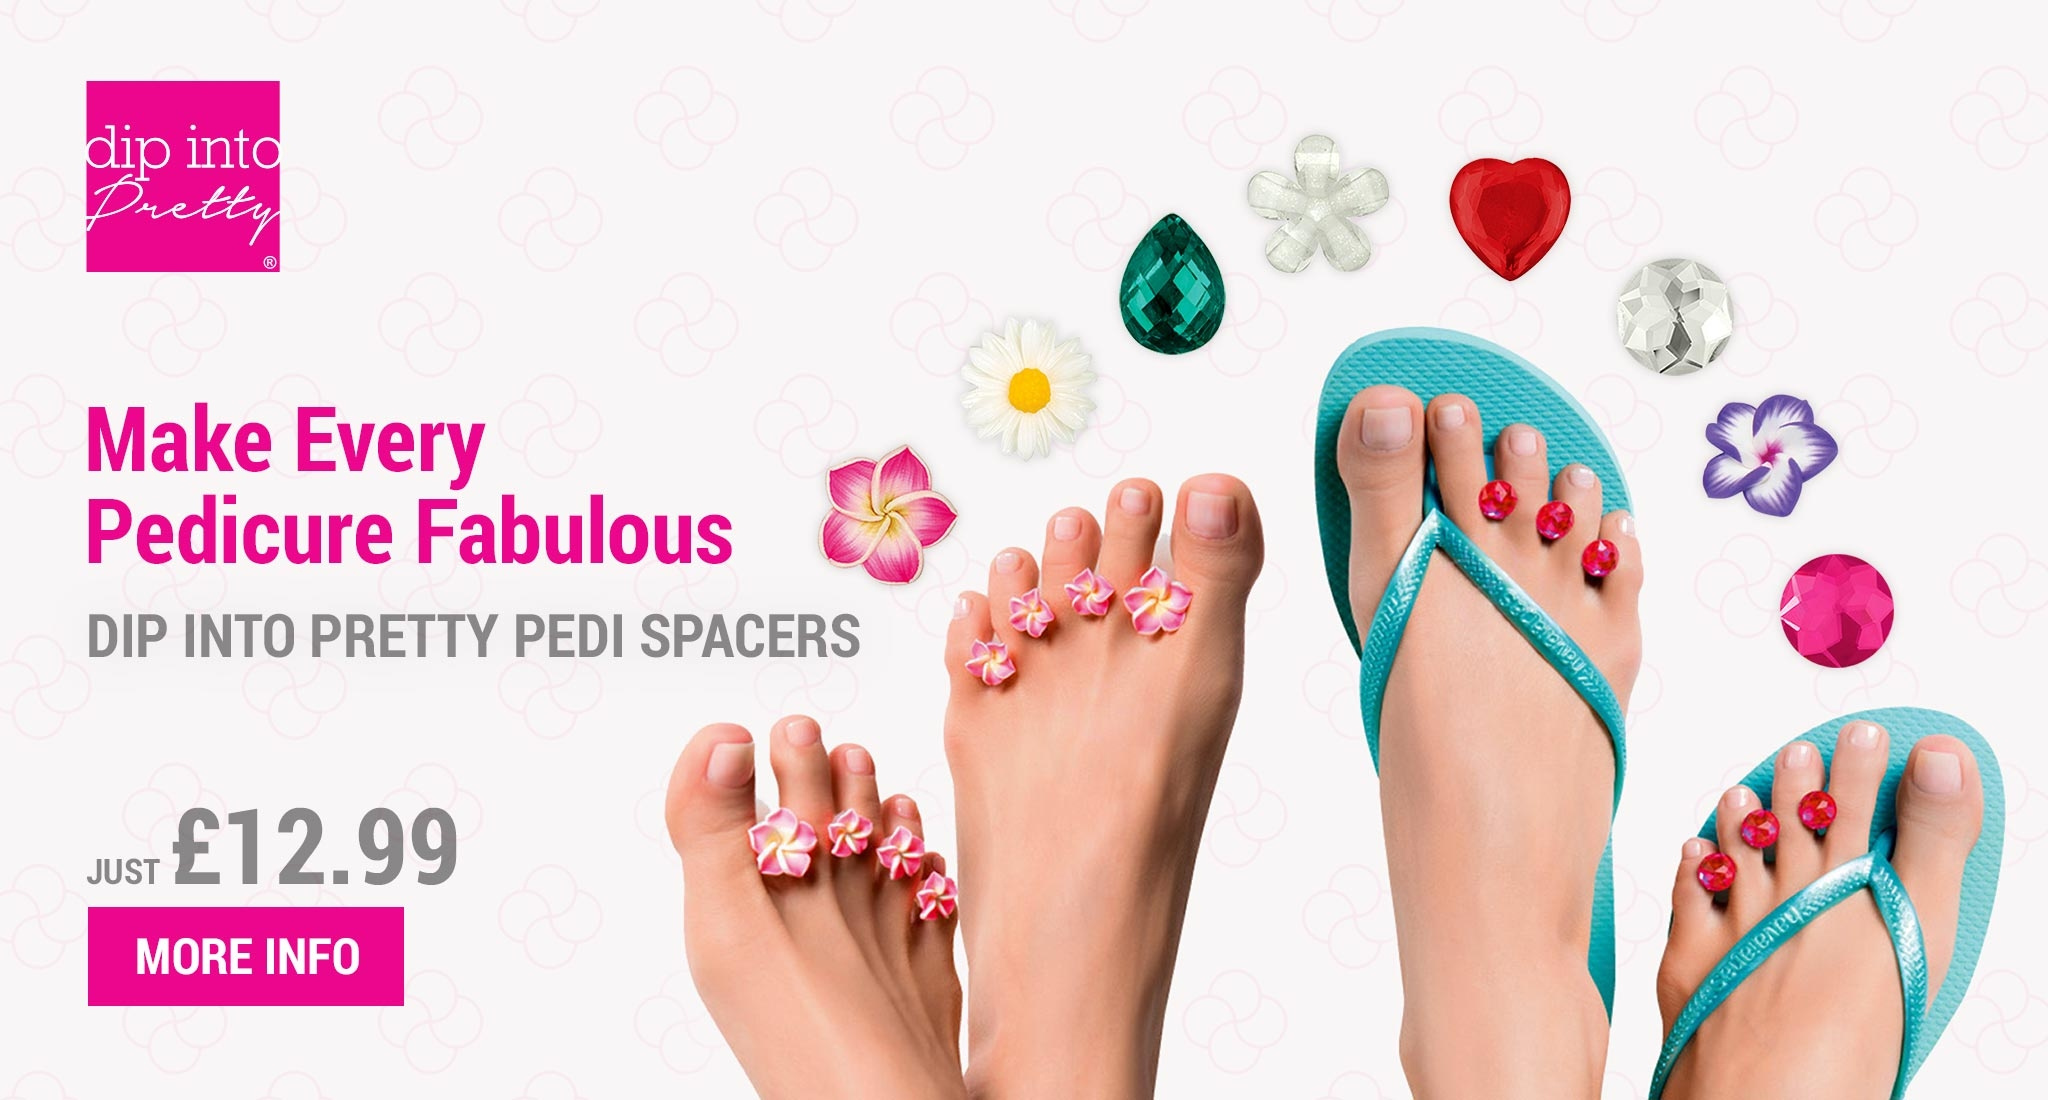 Shop for Dip Into Pretty Pedi-Spacers